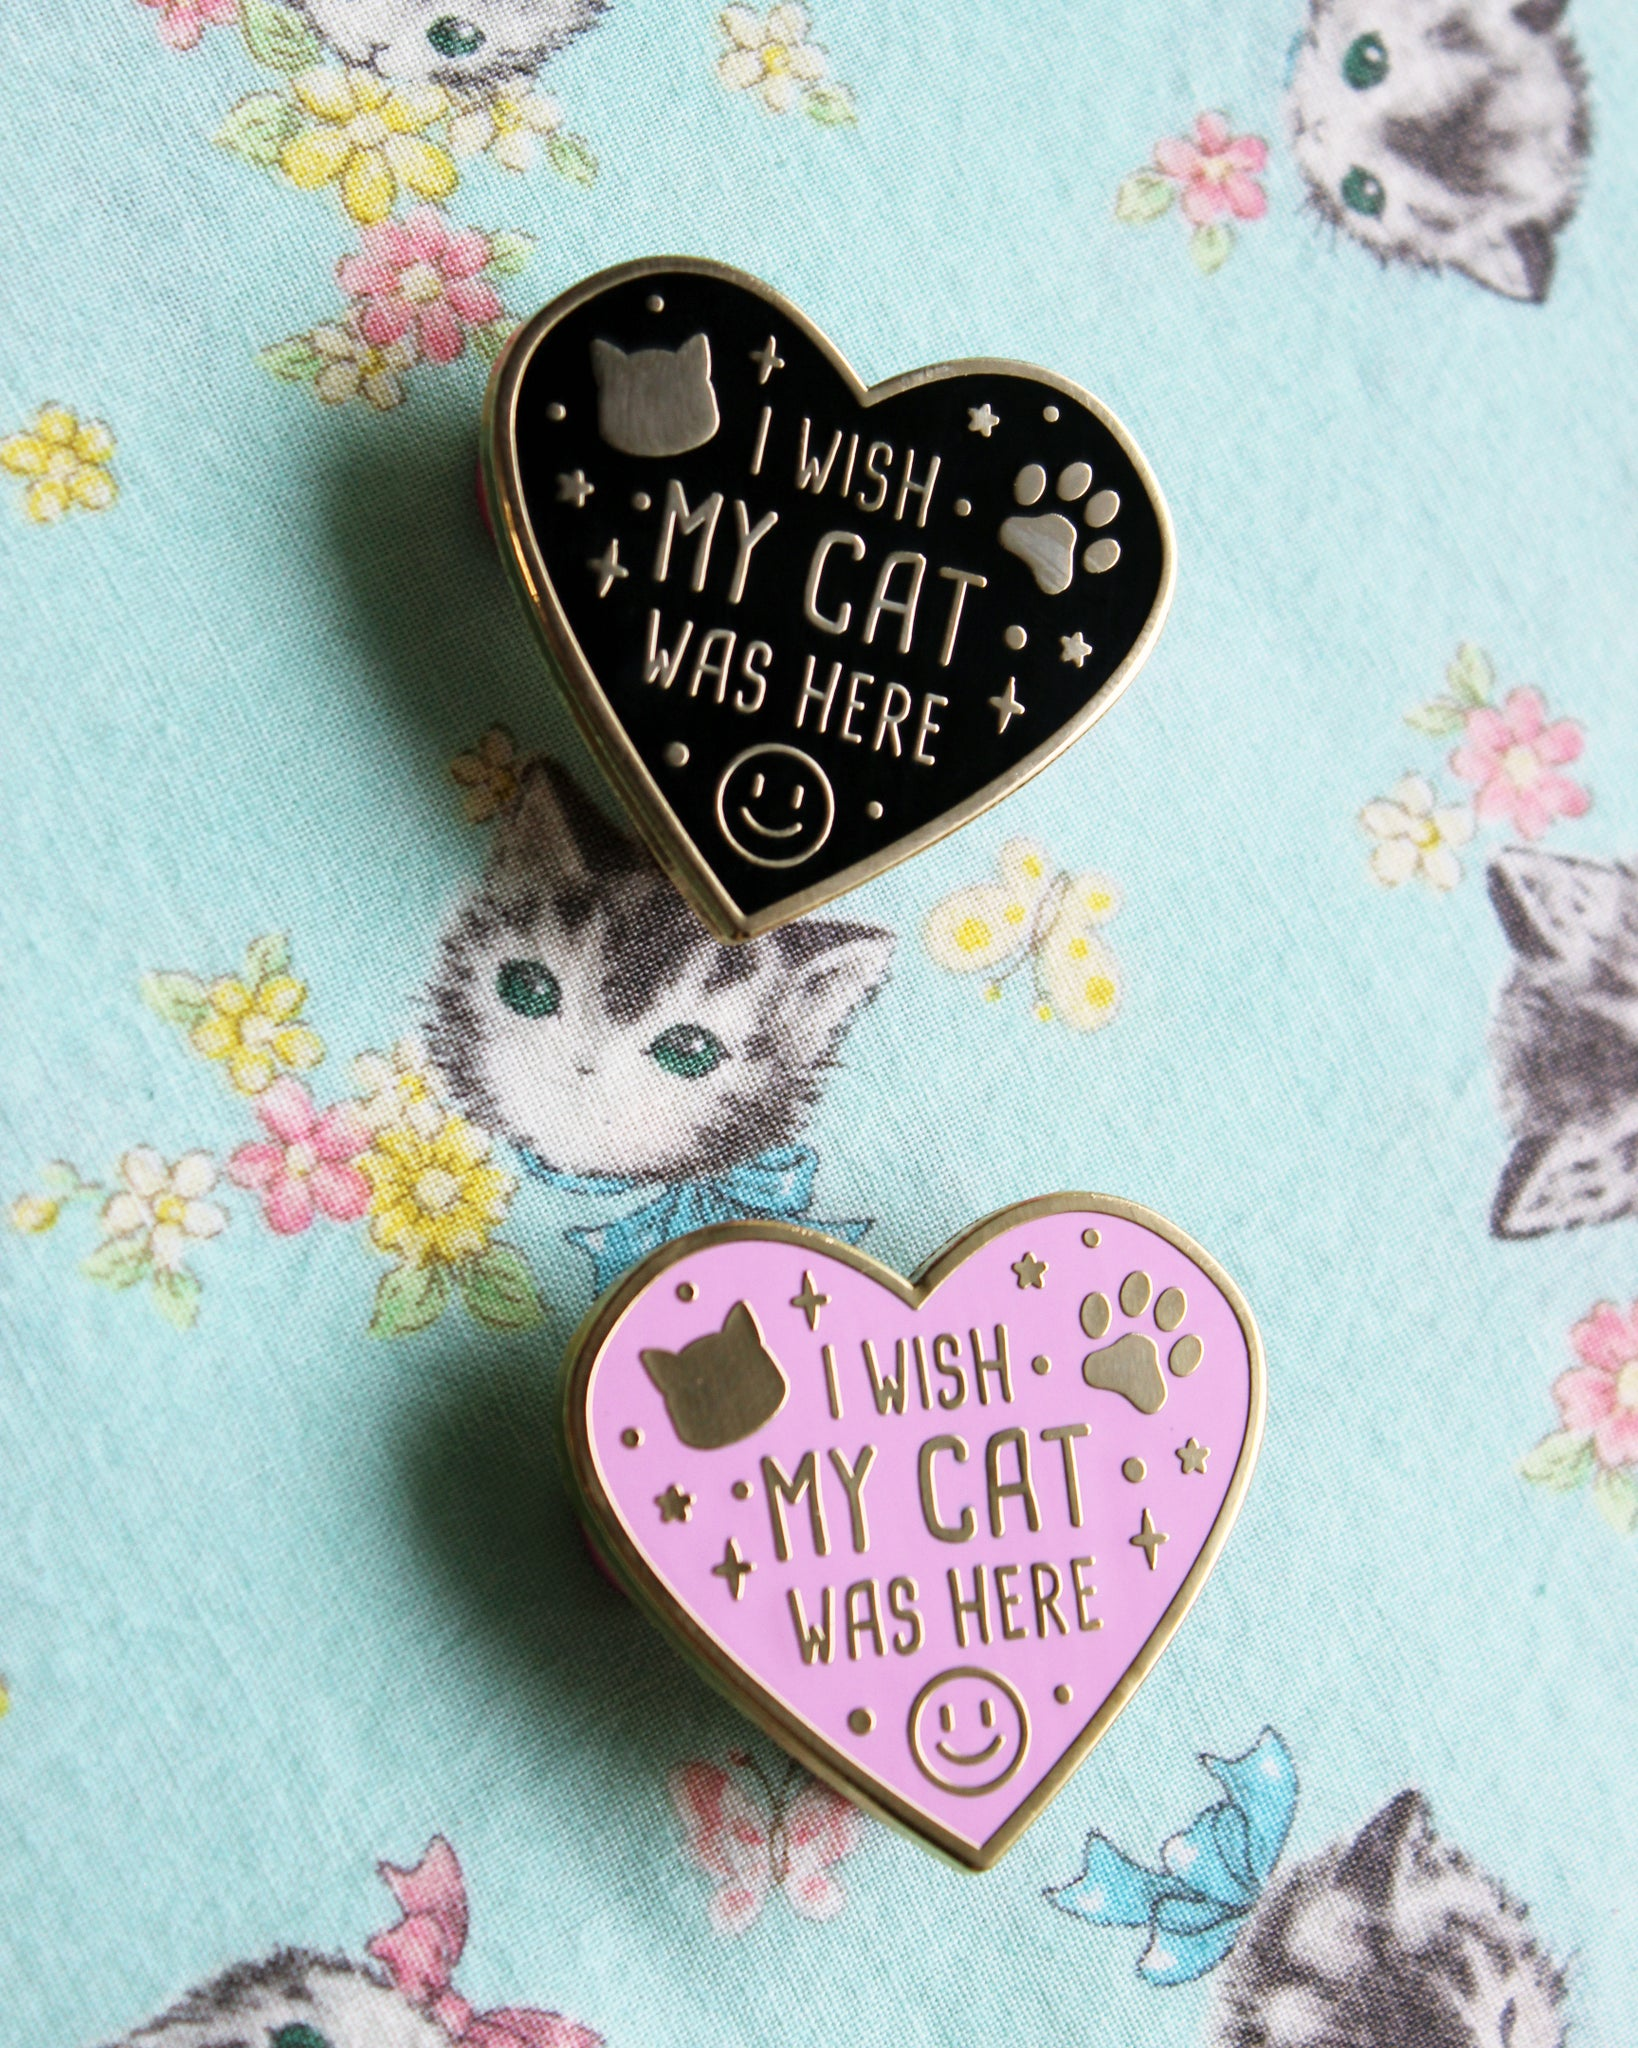 I Wish My Cat Was Here - Hard Enamel Pin